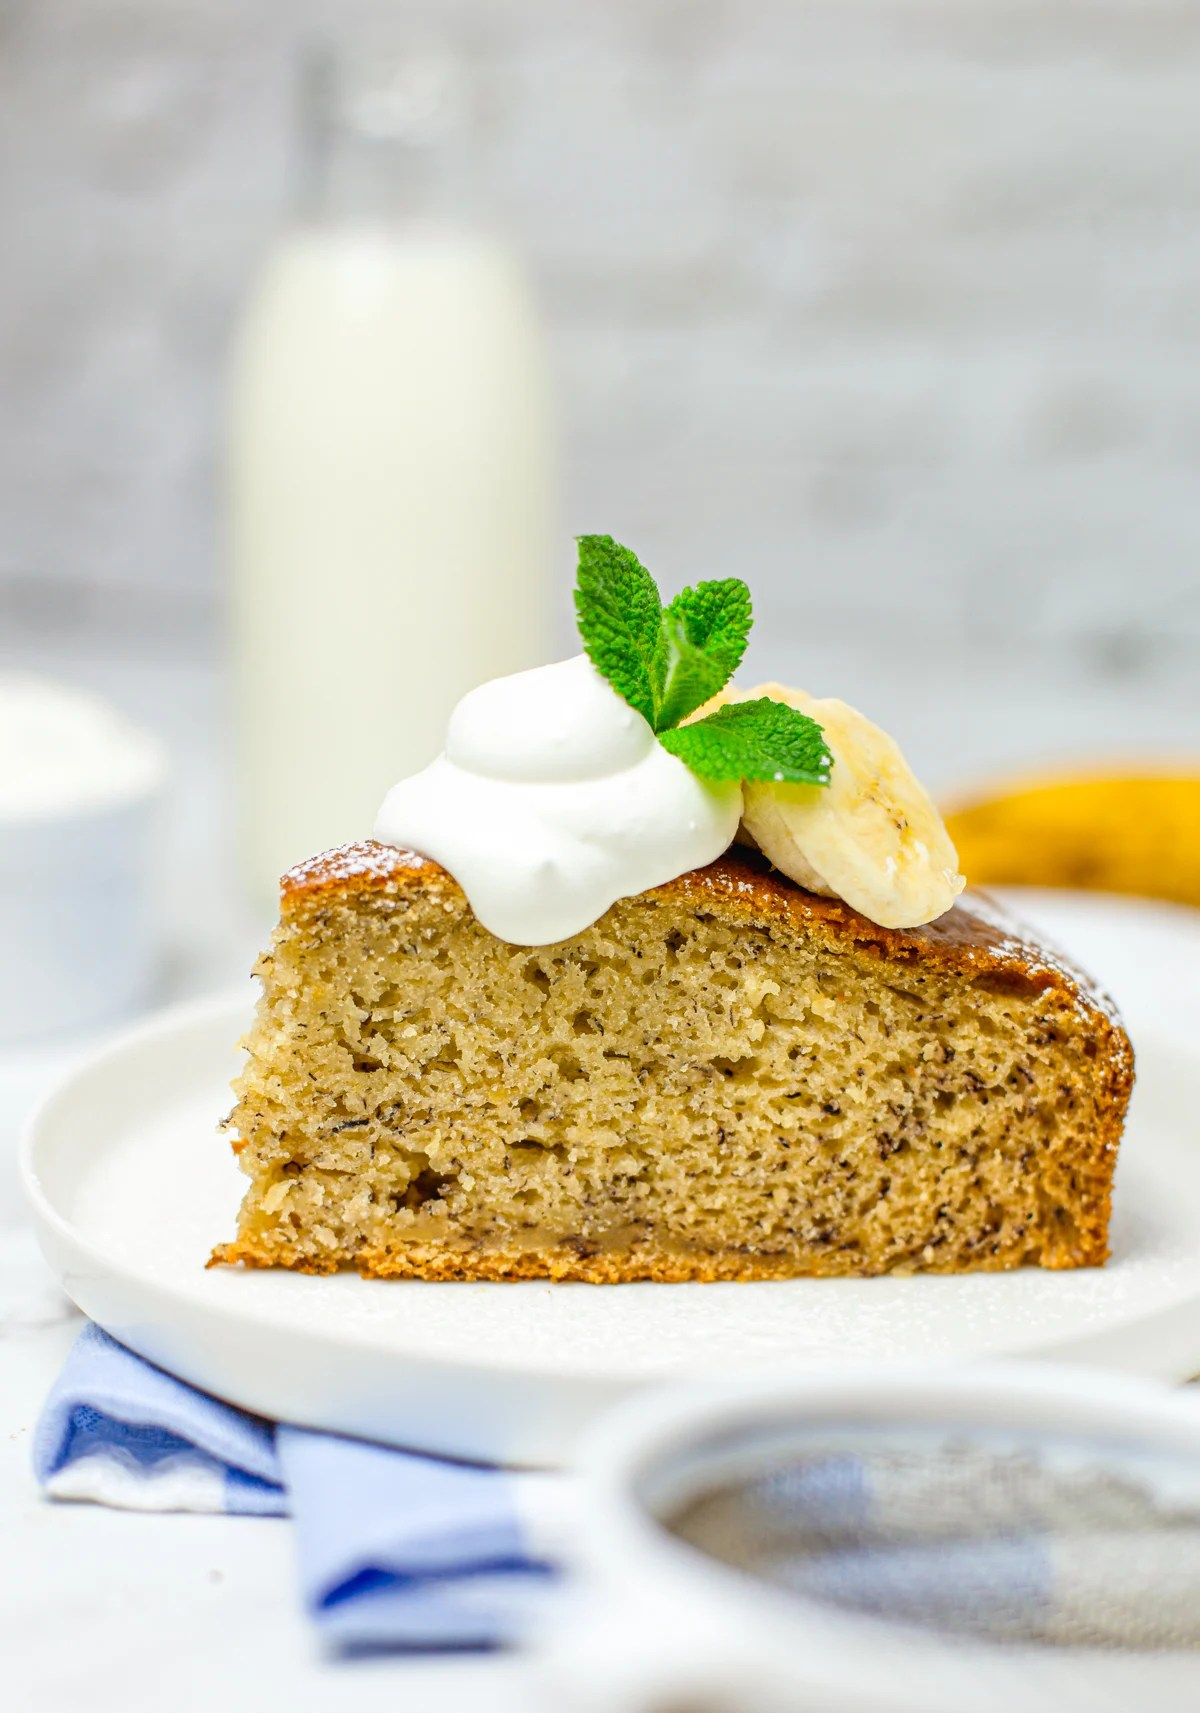 Side view of Snack Cake garnished